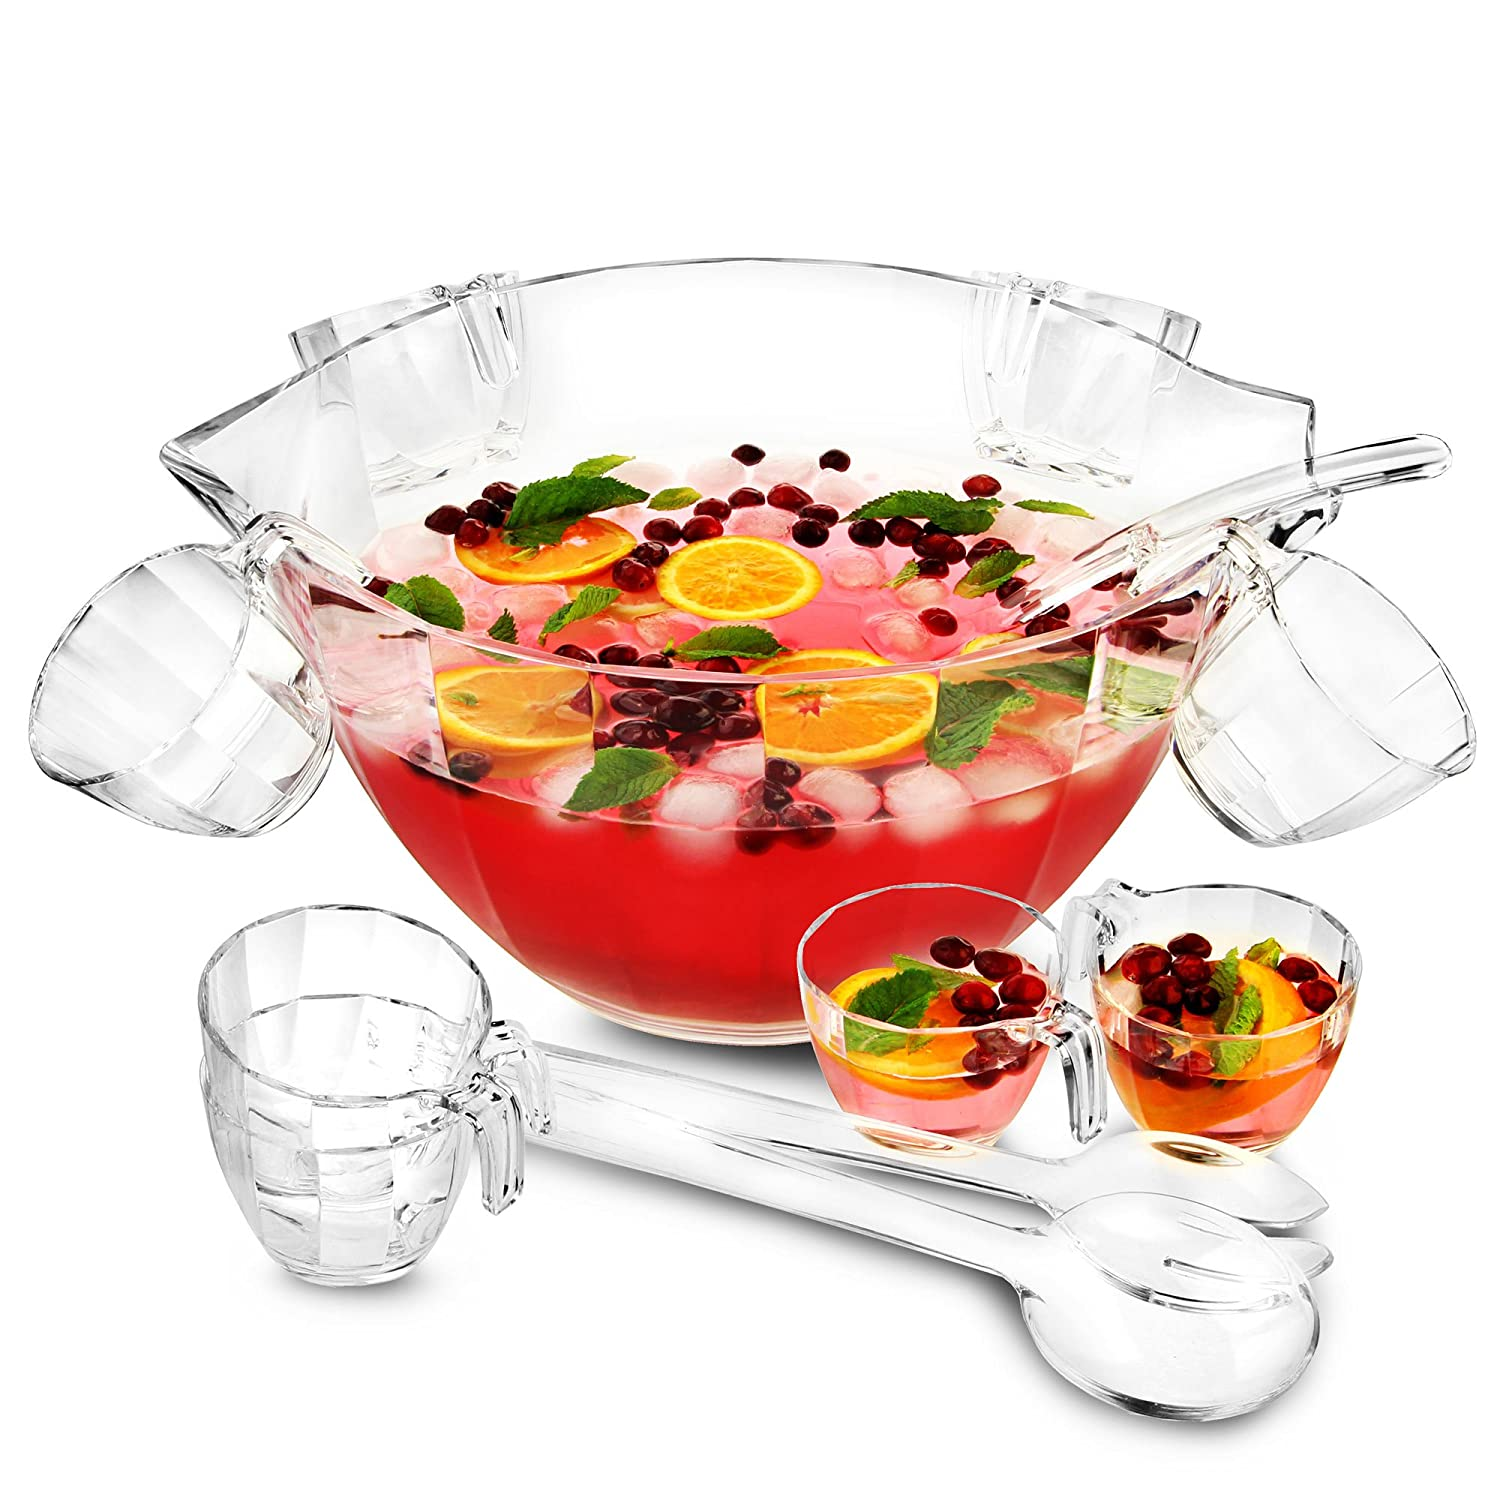 bar@drinkstuff Glacier Acrylic Punch Bowl Set - Multi Purpose Punch Bowl and Salad Bowl in One, Cocktail Bowl